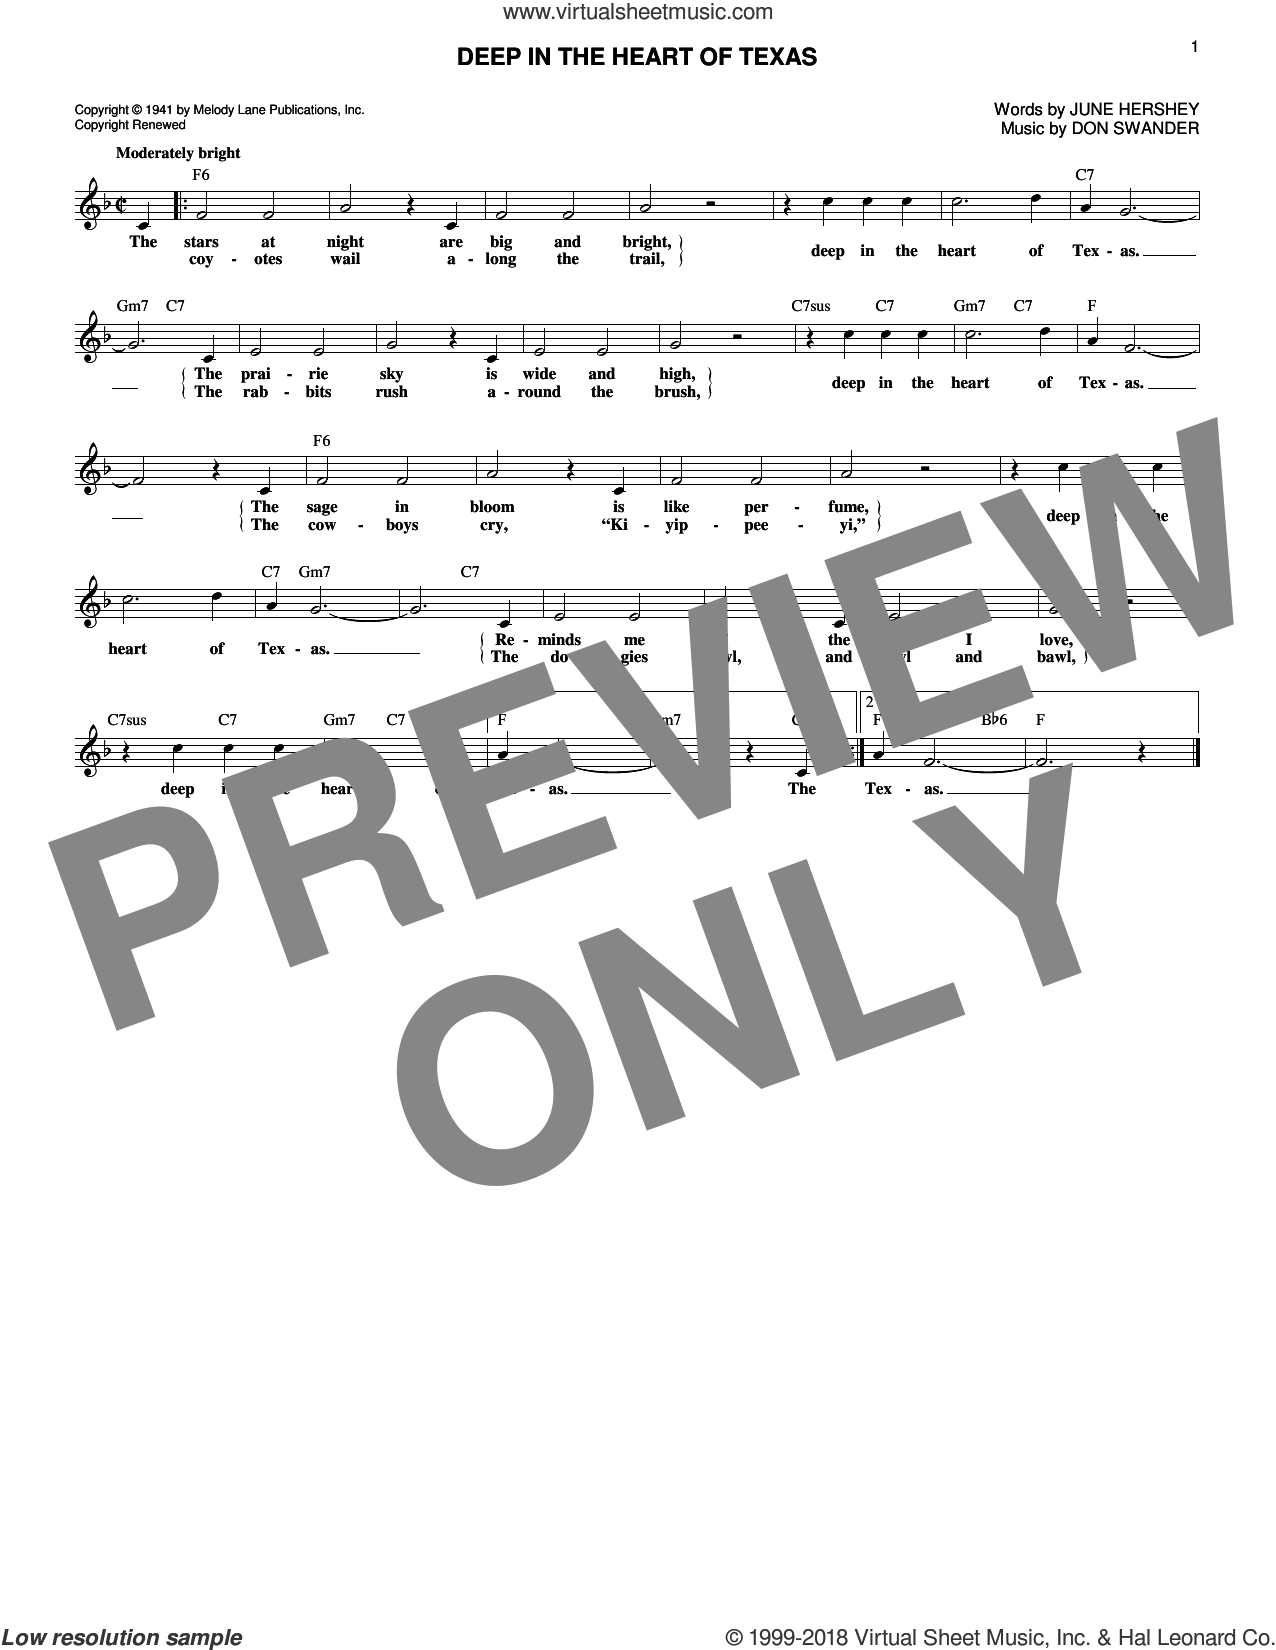 Deep In The Heart Of Texas sheet music for voice and other instruments (fake book) by Don Swander, Alvino Rey & His Orchestra, Bing Crosby and June Hershey, intermediate skill level